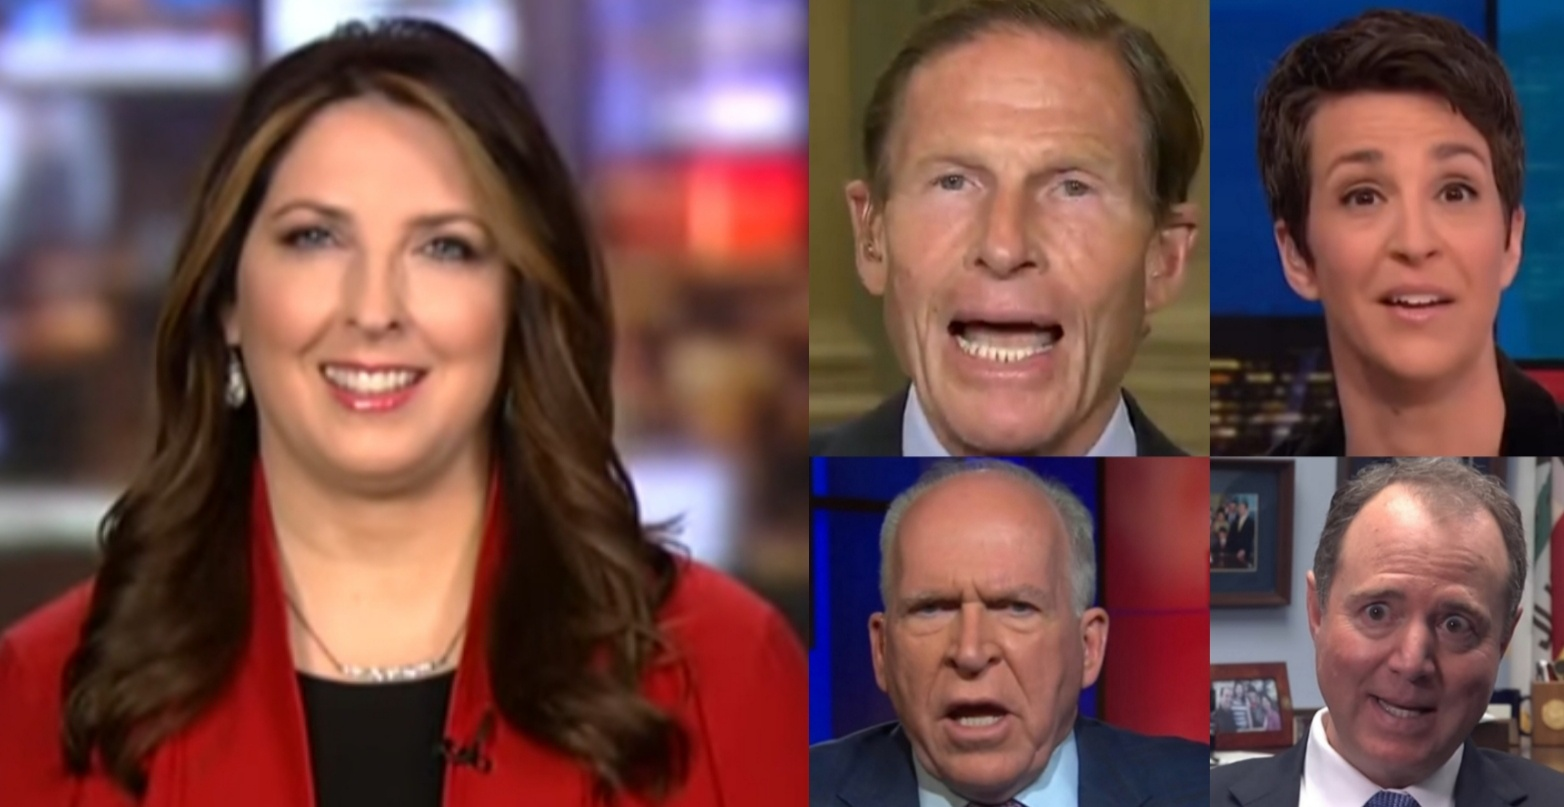 Ronna McDaneil Exposes The Left's Sudden Shift In Their Transparency Stance: 'Funny How That Works, Isn't It?'